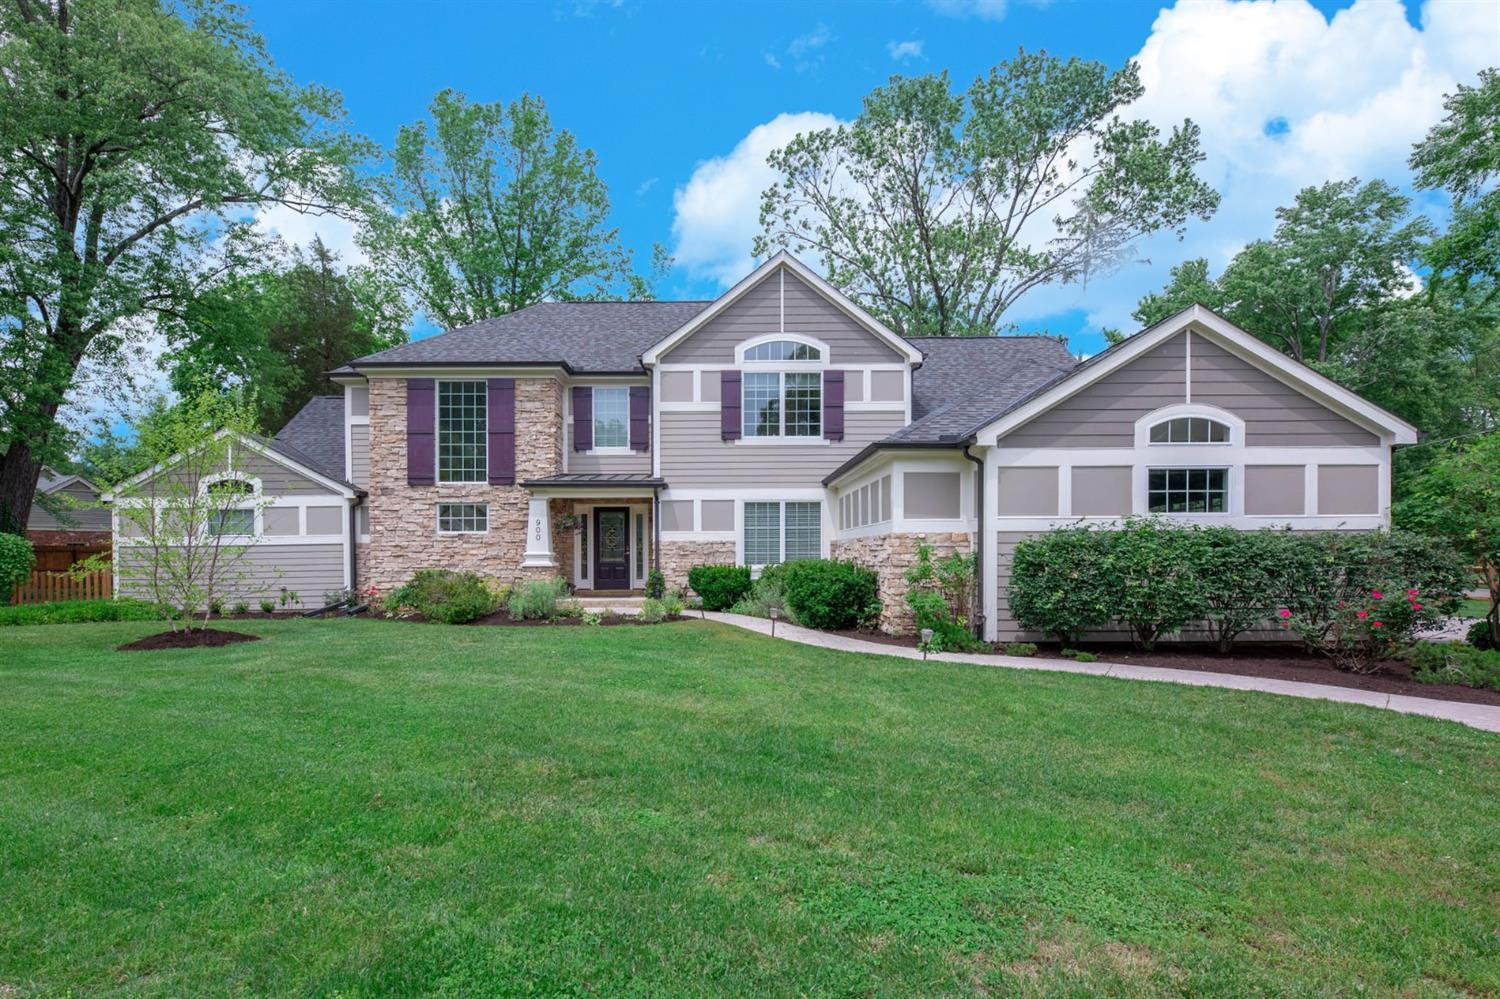 Photo 1 for 900 Princeton Dr Terrace Park, OH 45174